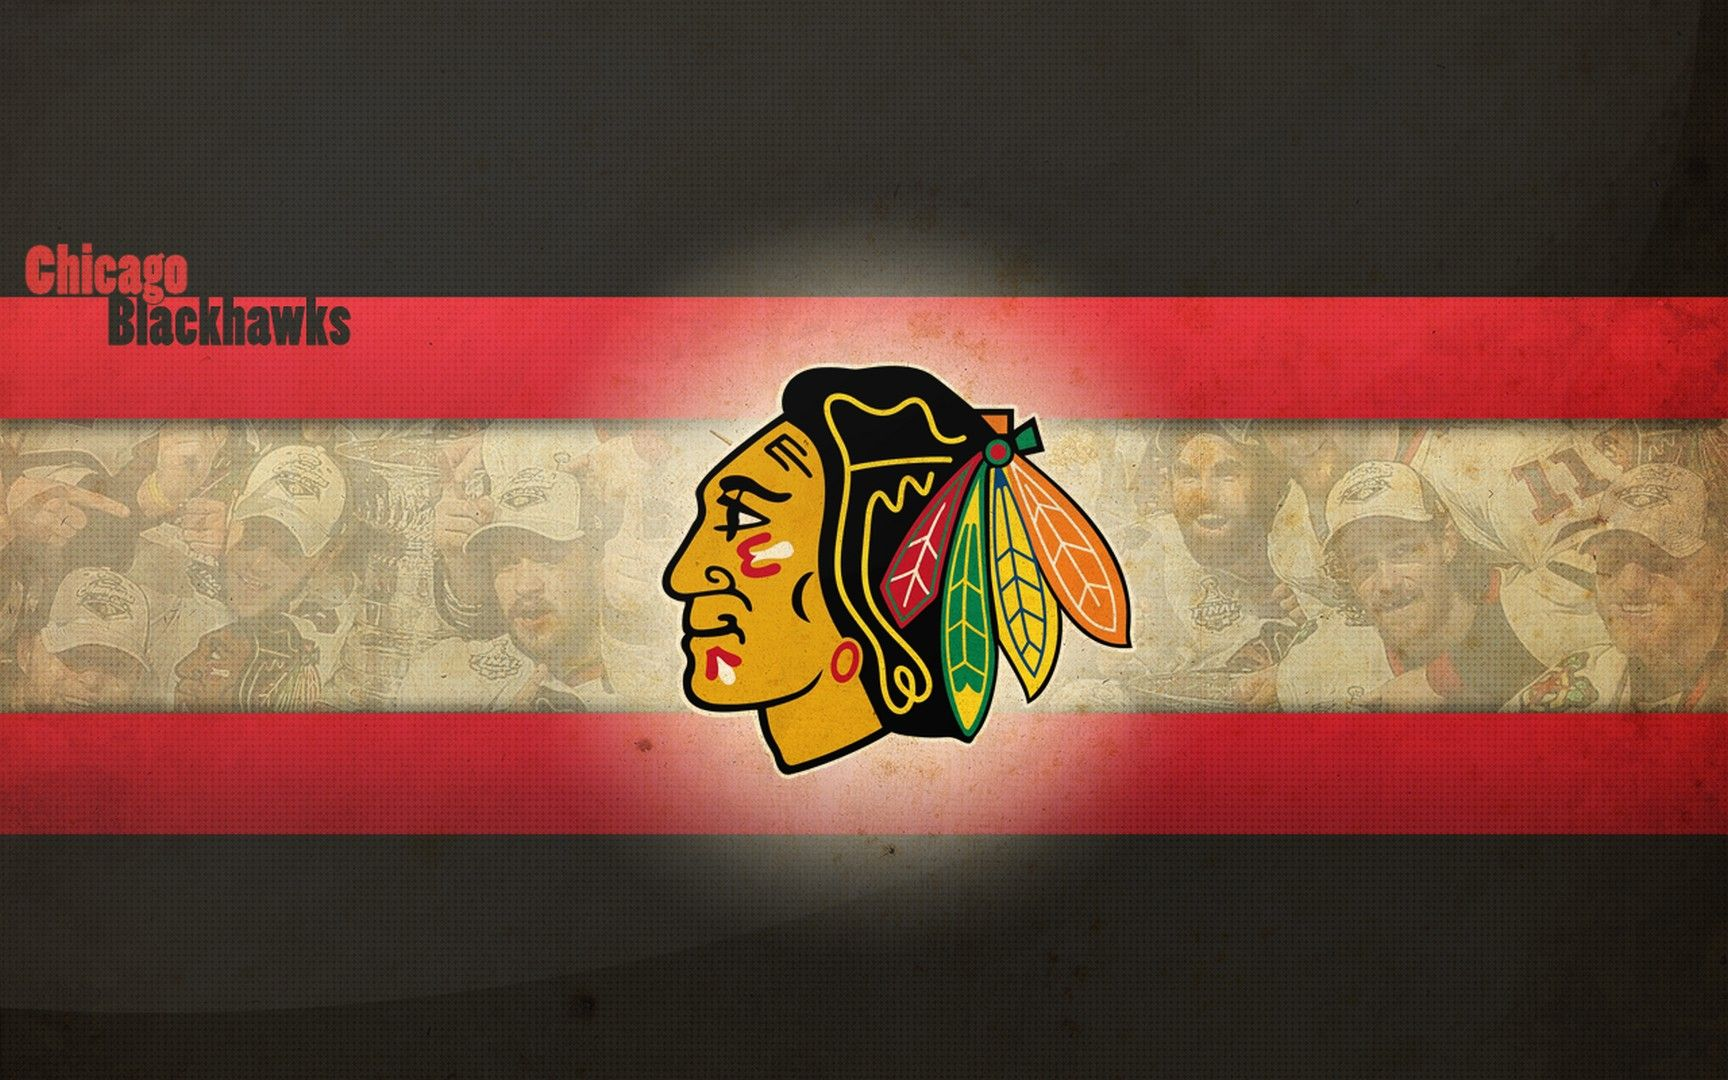 Blackhawks Macbook Wallpaper | Wallpaper | Pinterest | Chicago blackhawks wallpaper, Iphone ...